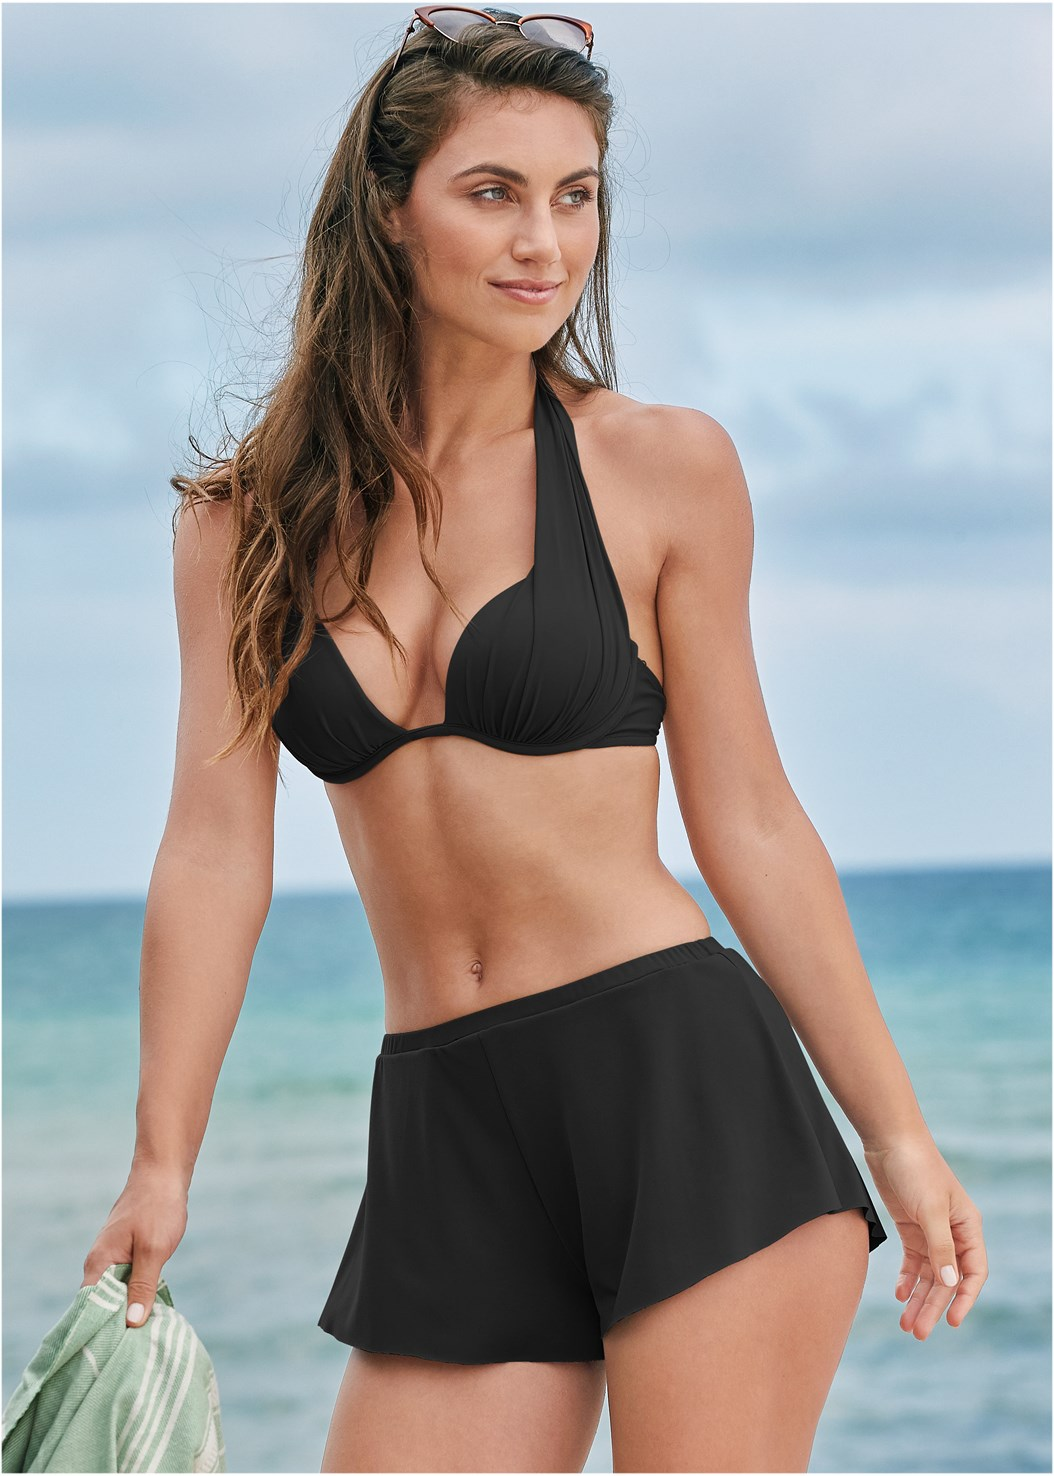 Swim Full Coverage Shorts,Marilyn Underwire Push Up Halter Top,Underwire Wrap Top,Jillian Underwire Top